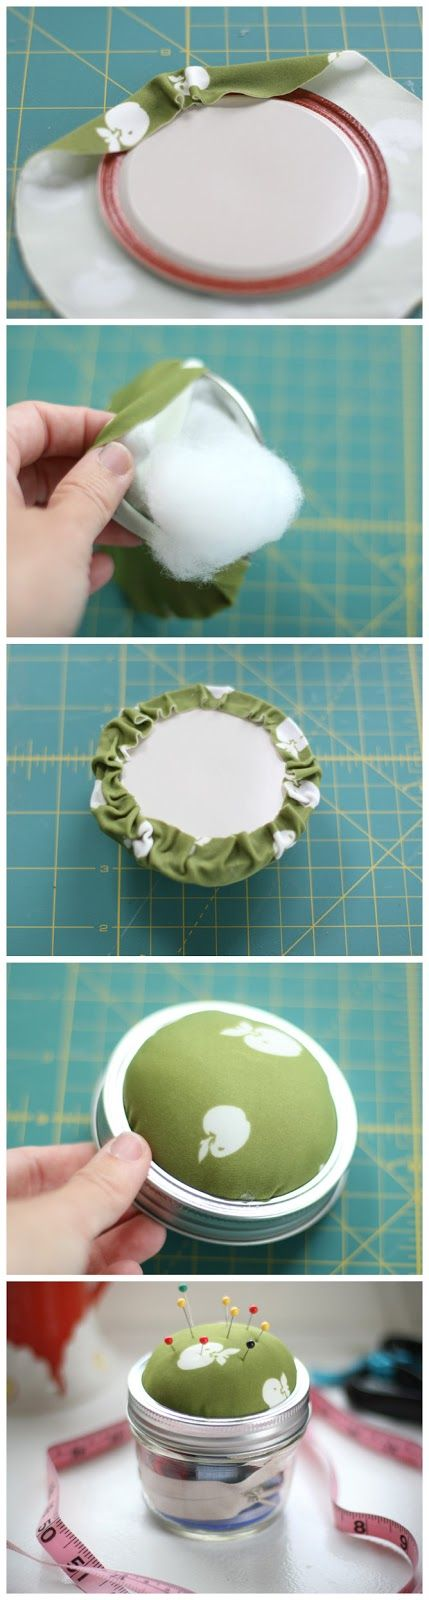 DIY: Mason Jar Sewing Kit.  Well that's a good idea.